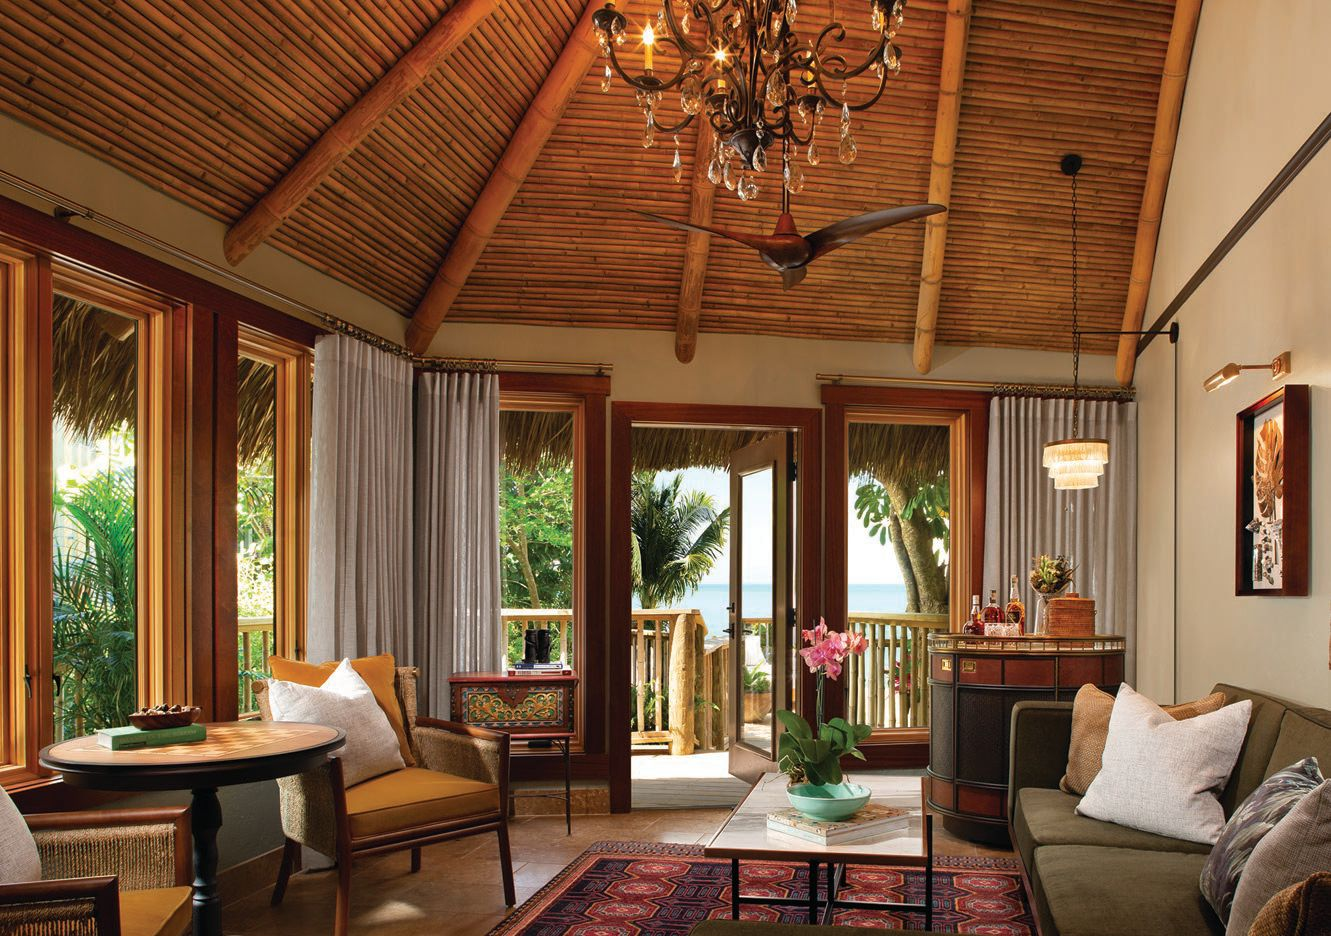 Vaulted ceilings and British West Indies-inspired decor make for alluring accommodations PHOTO COURTESY OF LITTLE PALM ISLAND RESORT & SPA